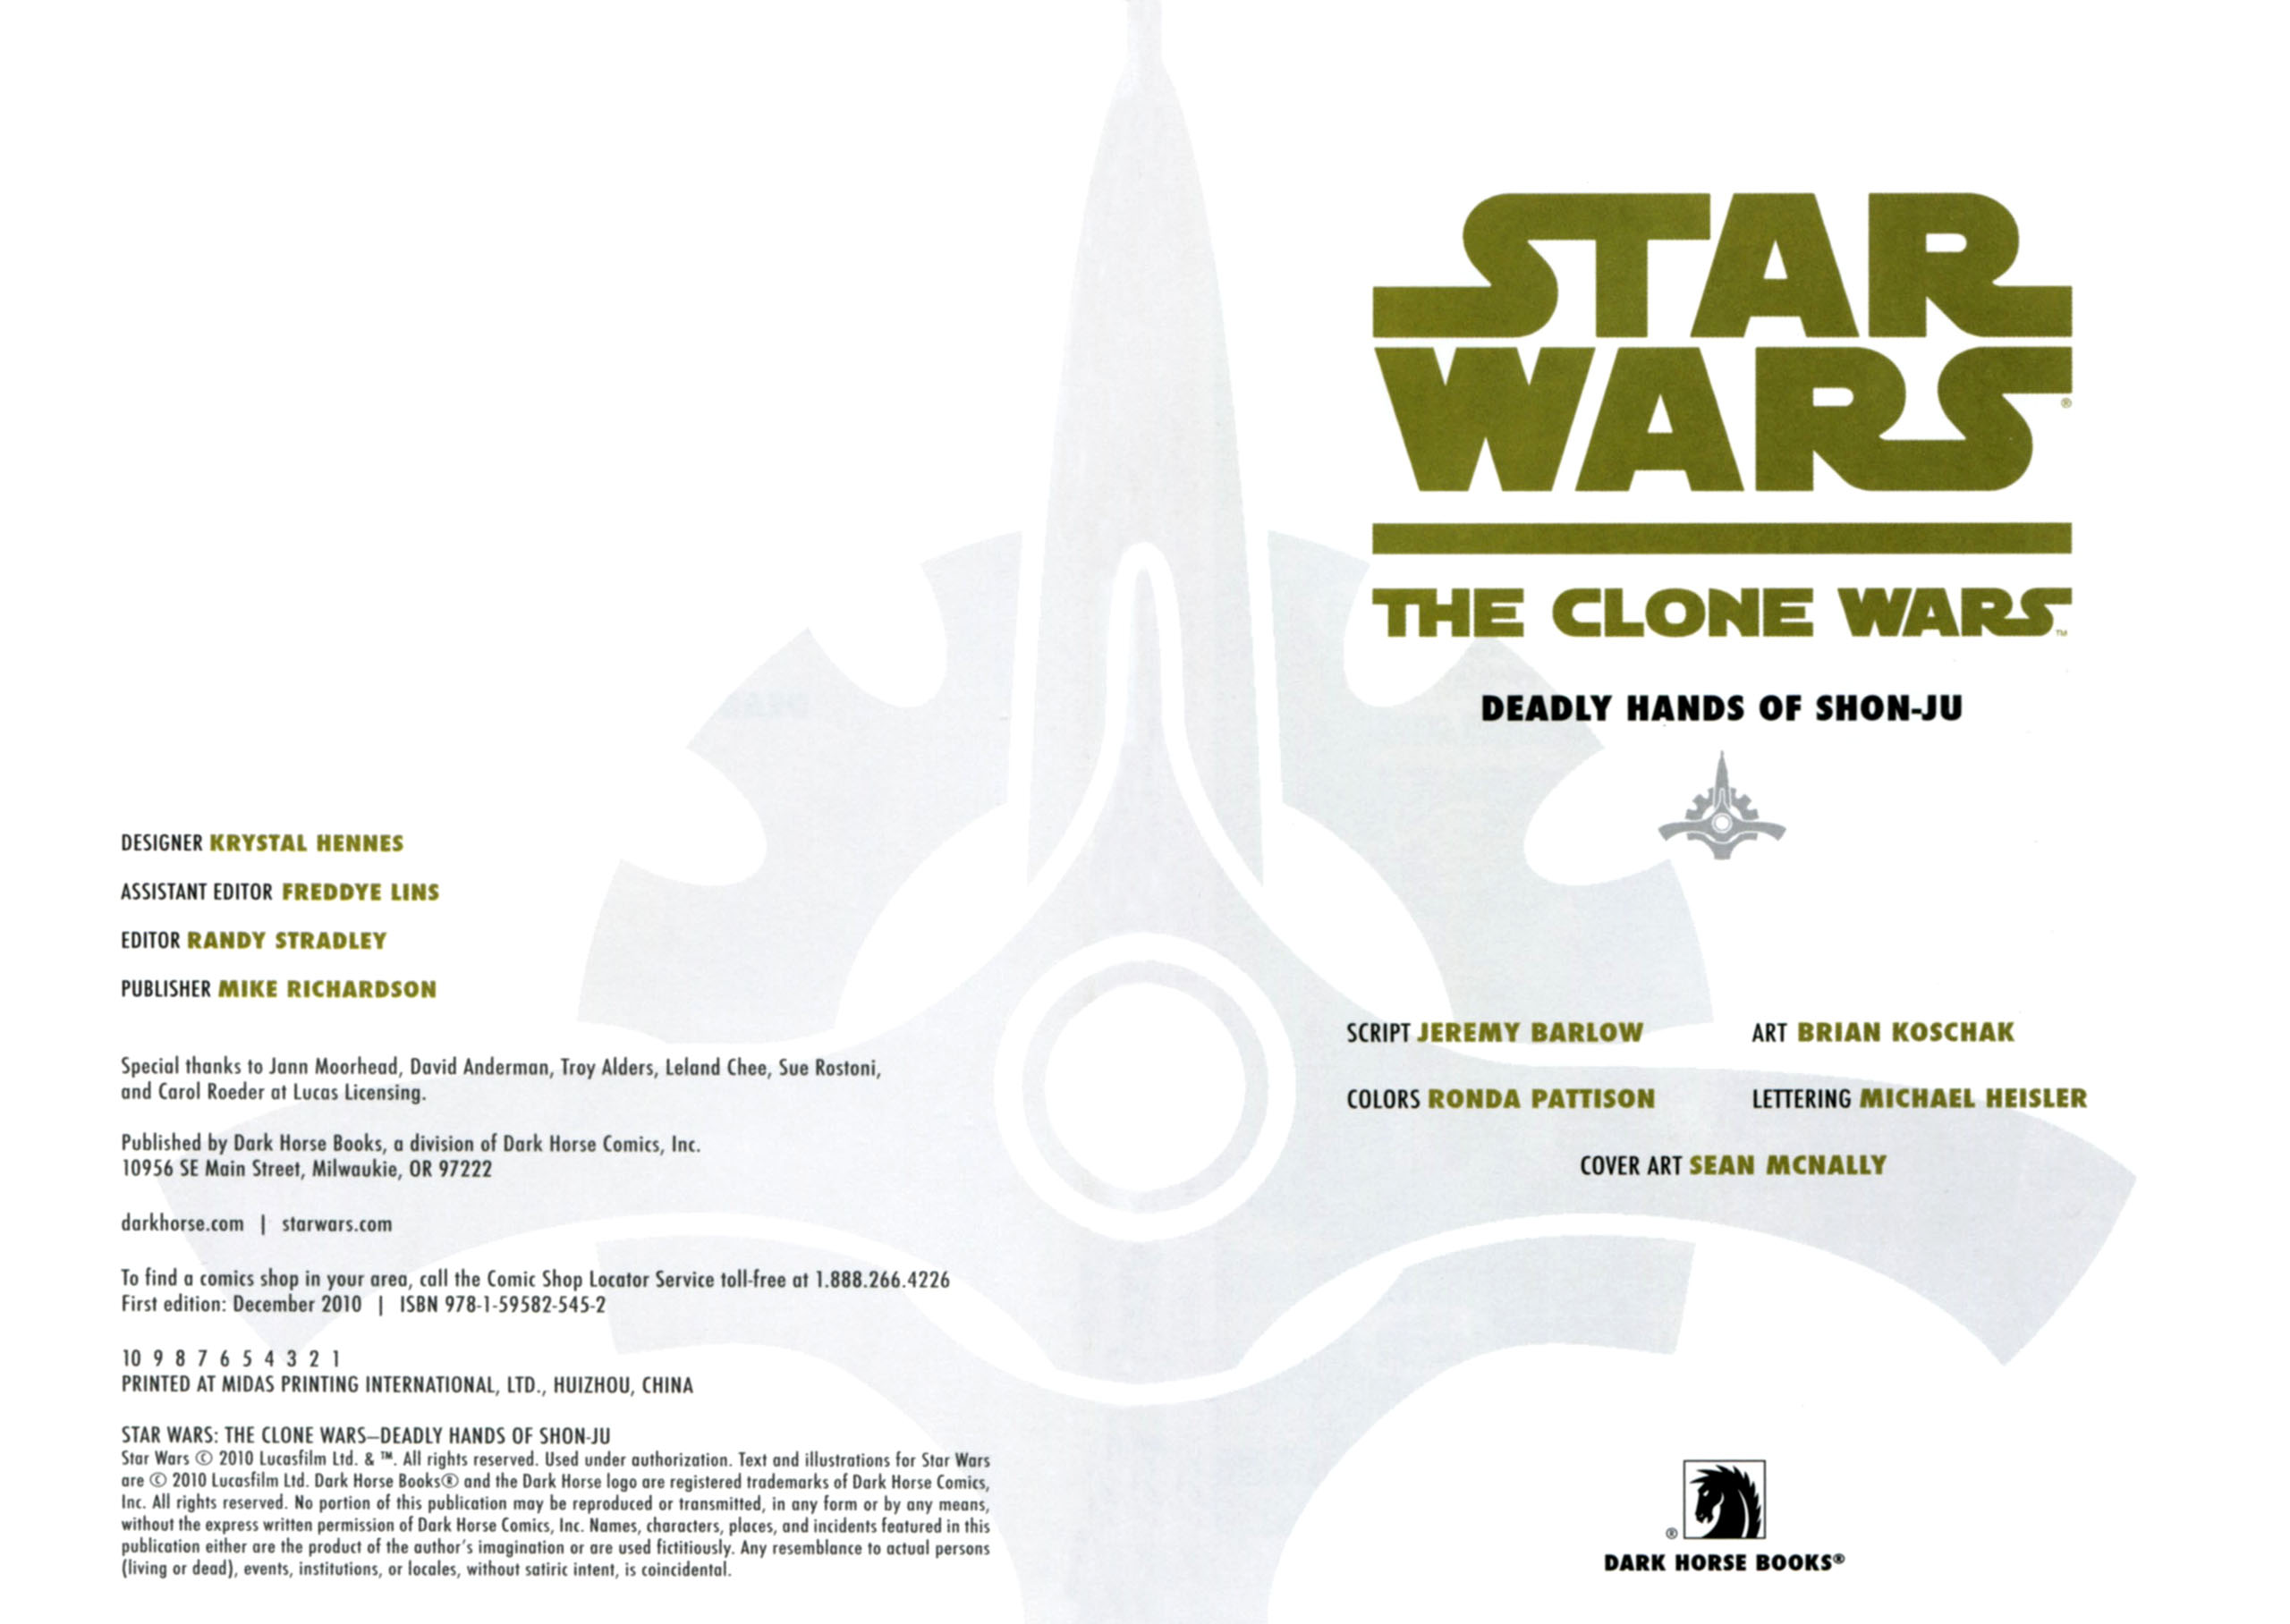 Read online Star Wars: The Clone Wars - Deadly Hands of Shon-Ju comic -  Issue # Full - 4